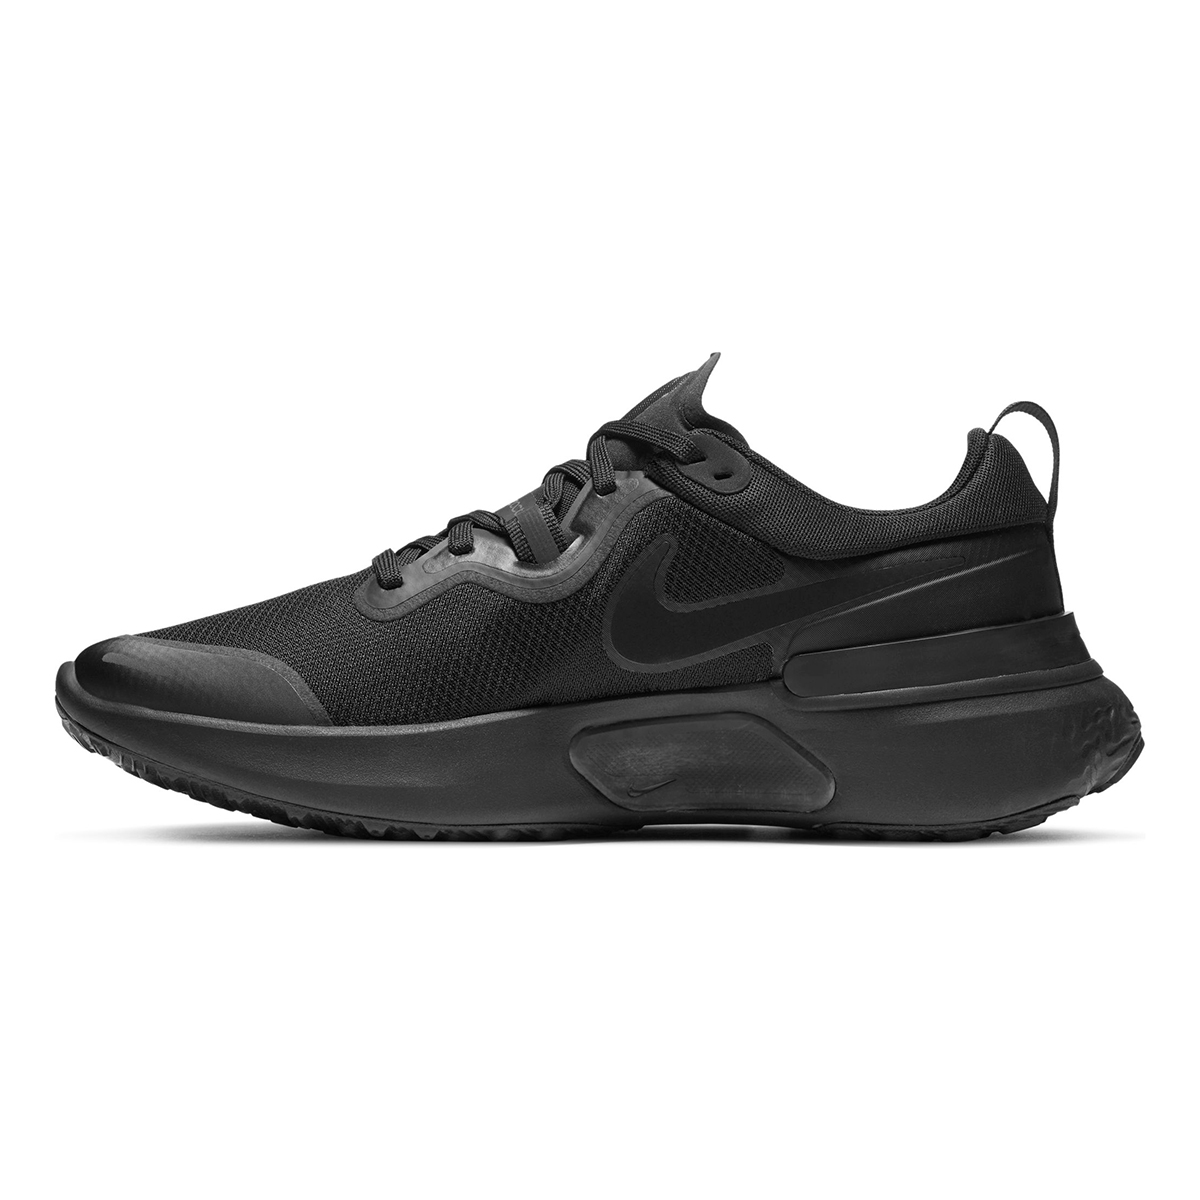 Men's Nike React Miler Running Shoe - Color: Black/Iron Grey/White/Black - Size: 6 - Width: Regular, Black/Iron Grey/White/Black, large, image 4